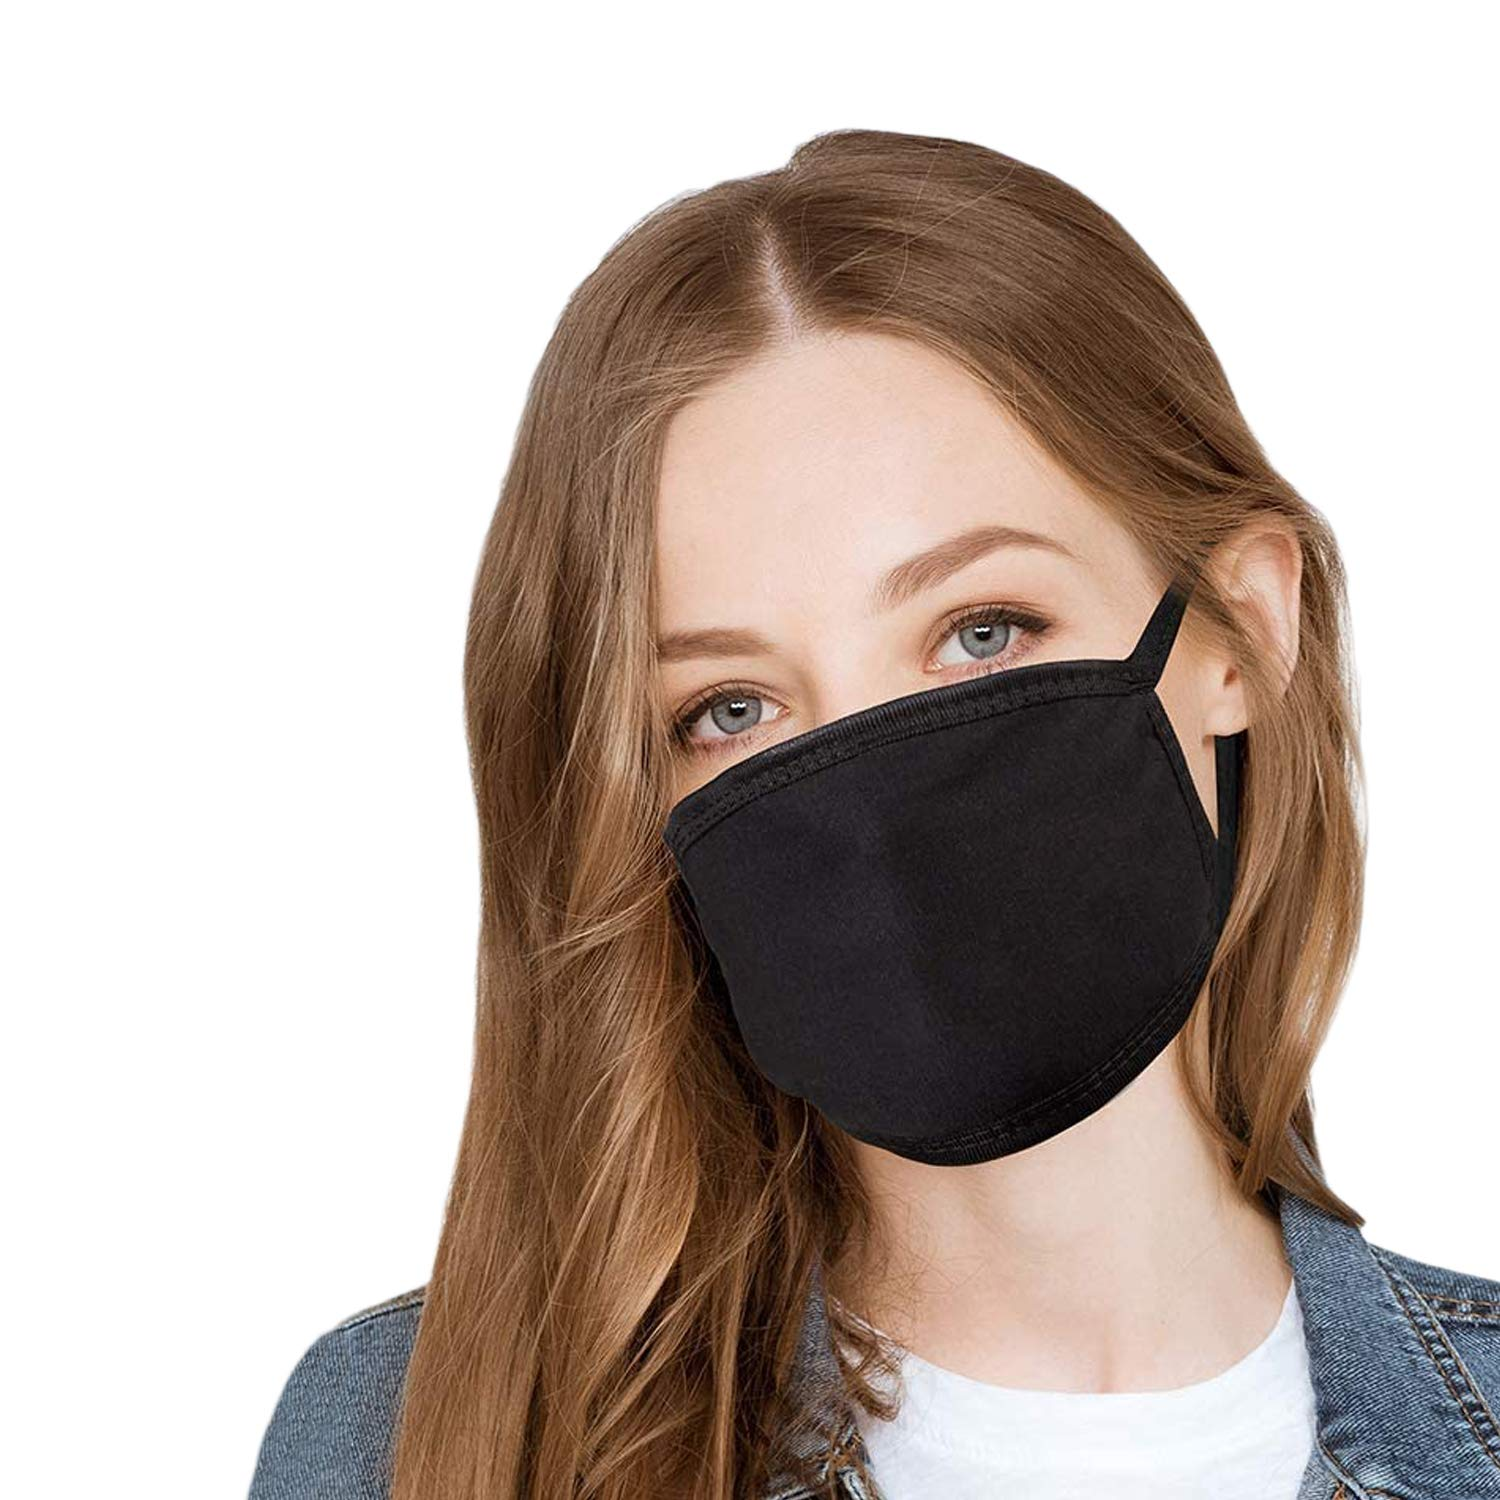 Anti_Dust Washable, Reusable Cotton Fabric Face_Mask_Cover Nose and Mouth For Unisex Adult Teen Kids Travel Cycling + 10 PCS